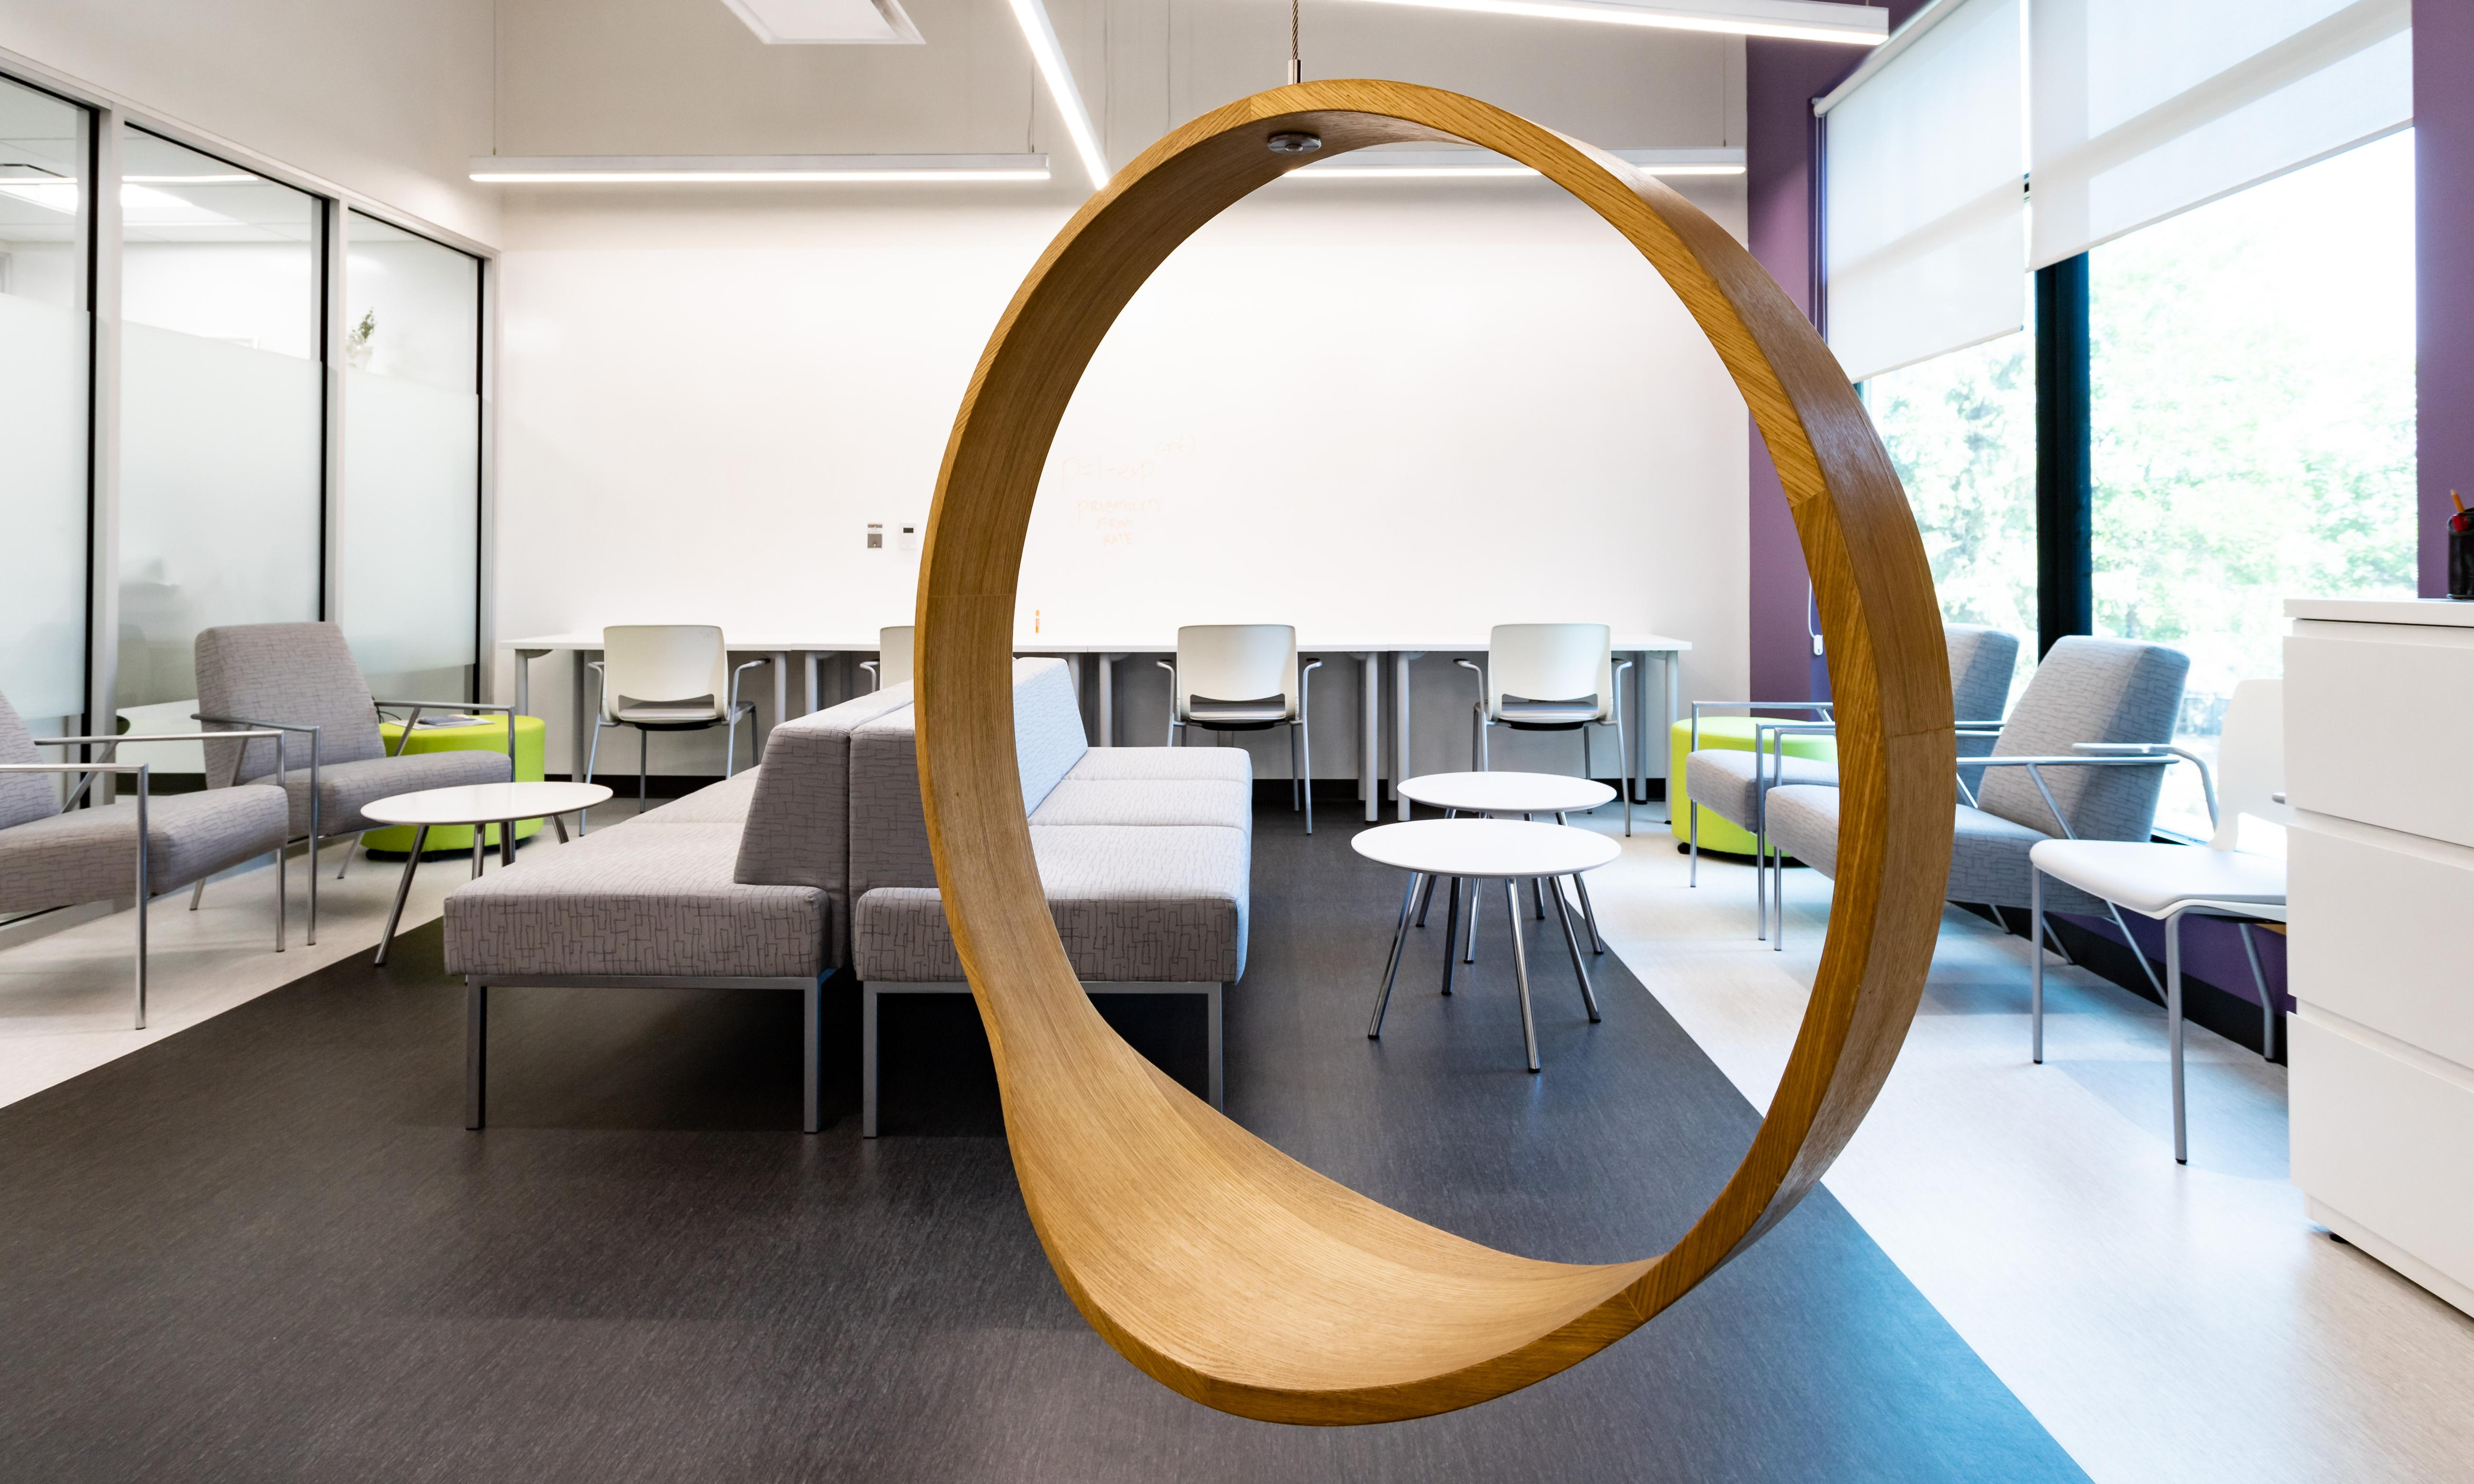 Seven Oaks General Hospital, Chronic Disease Innovation Centre. Modern office lounge with a round swing in the foreground.